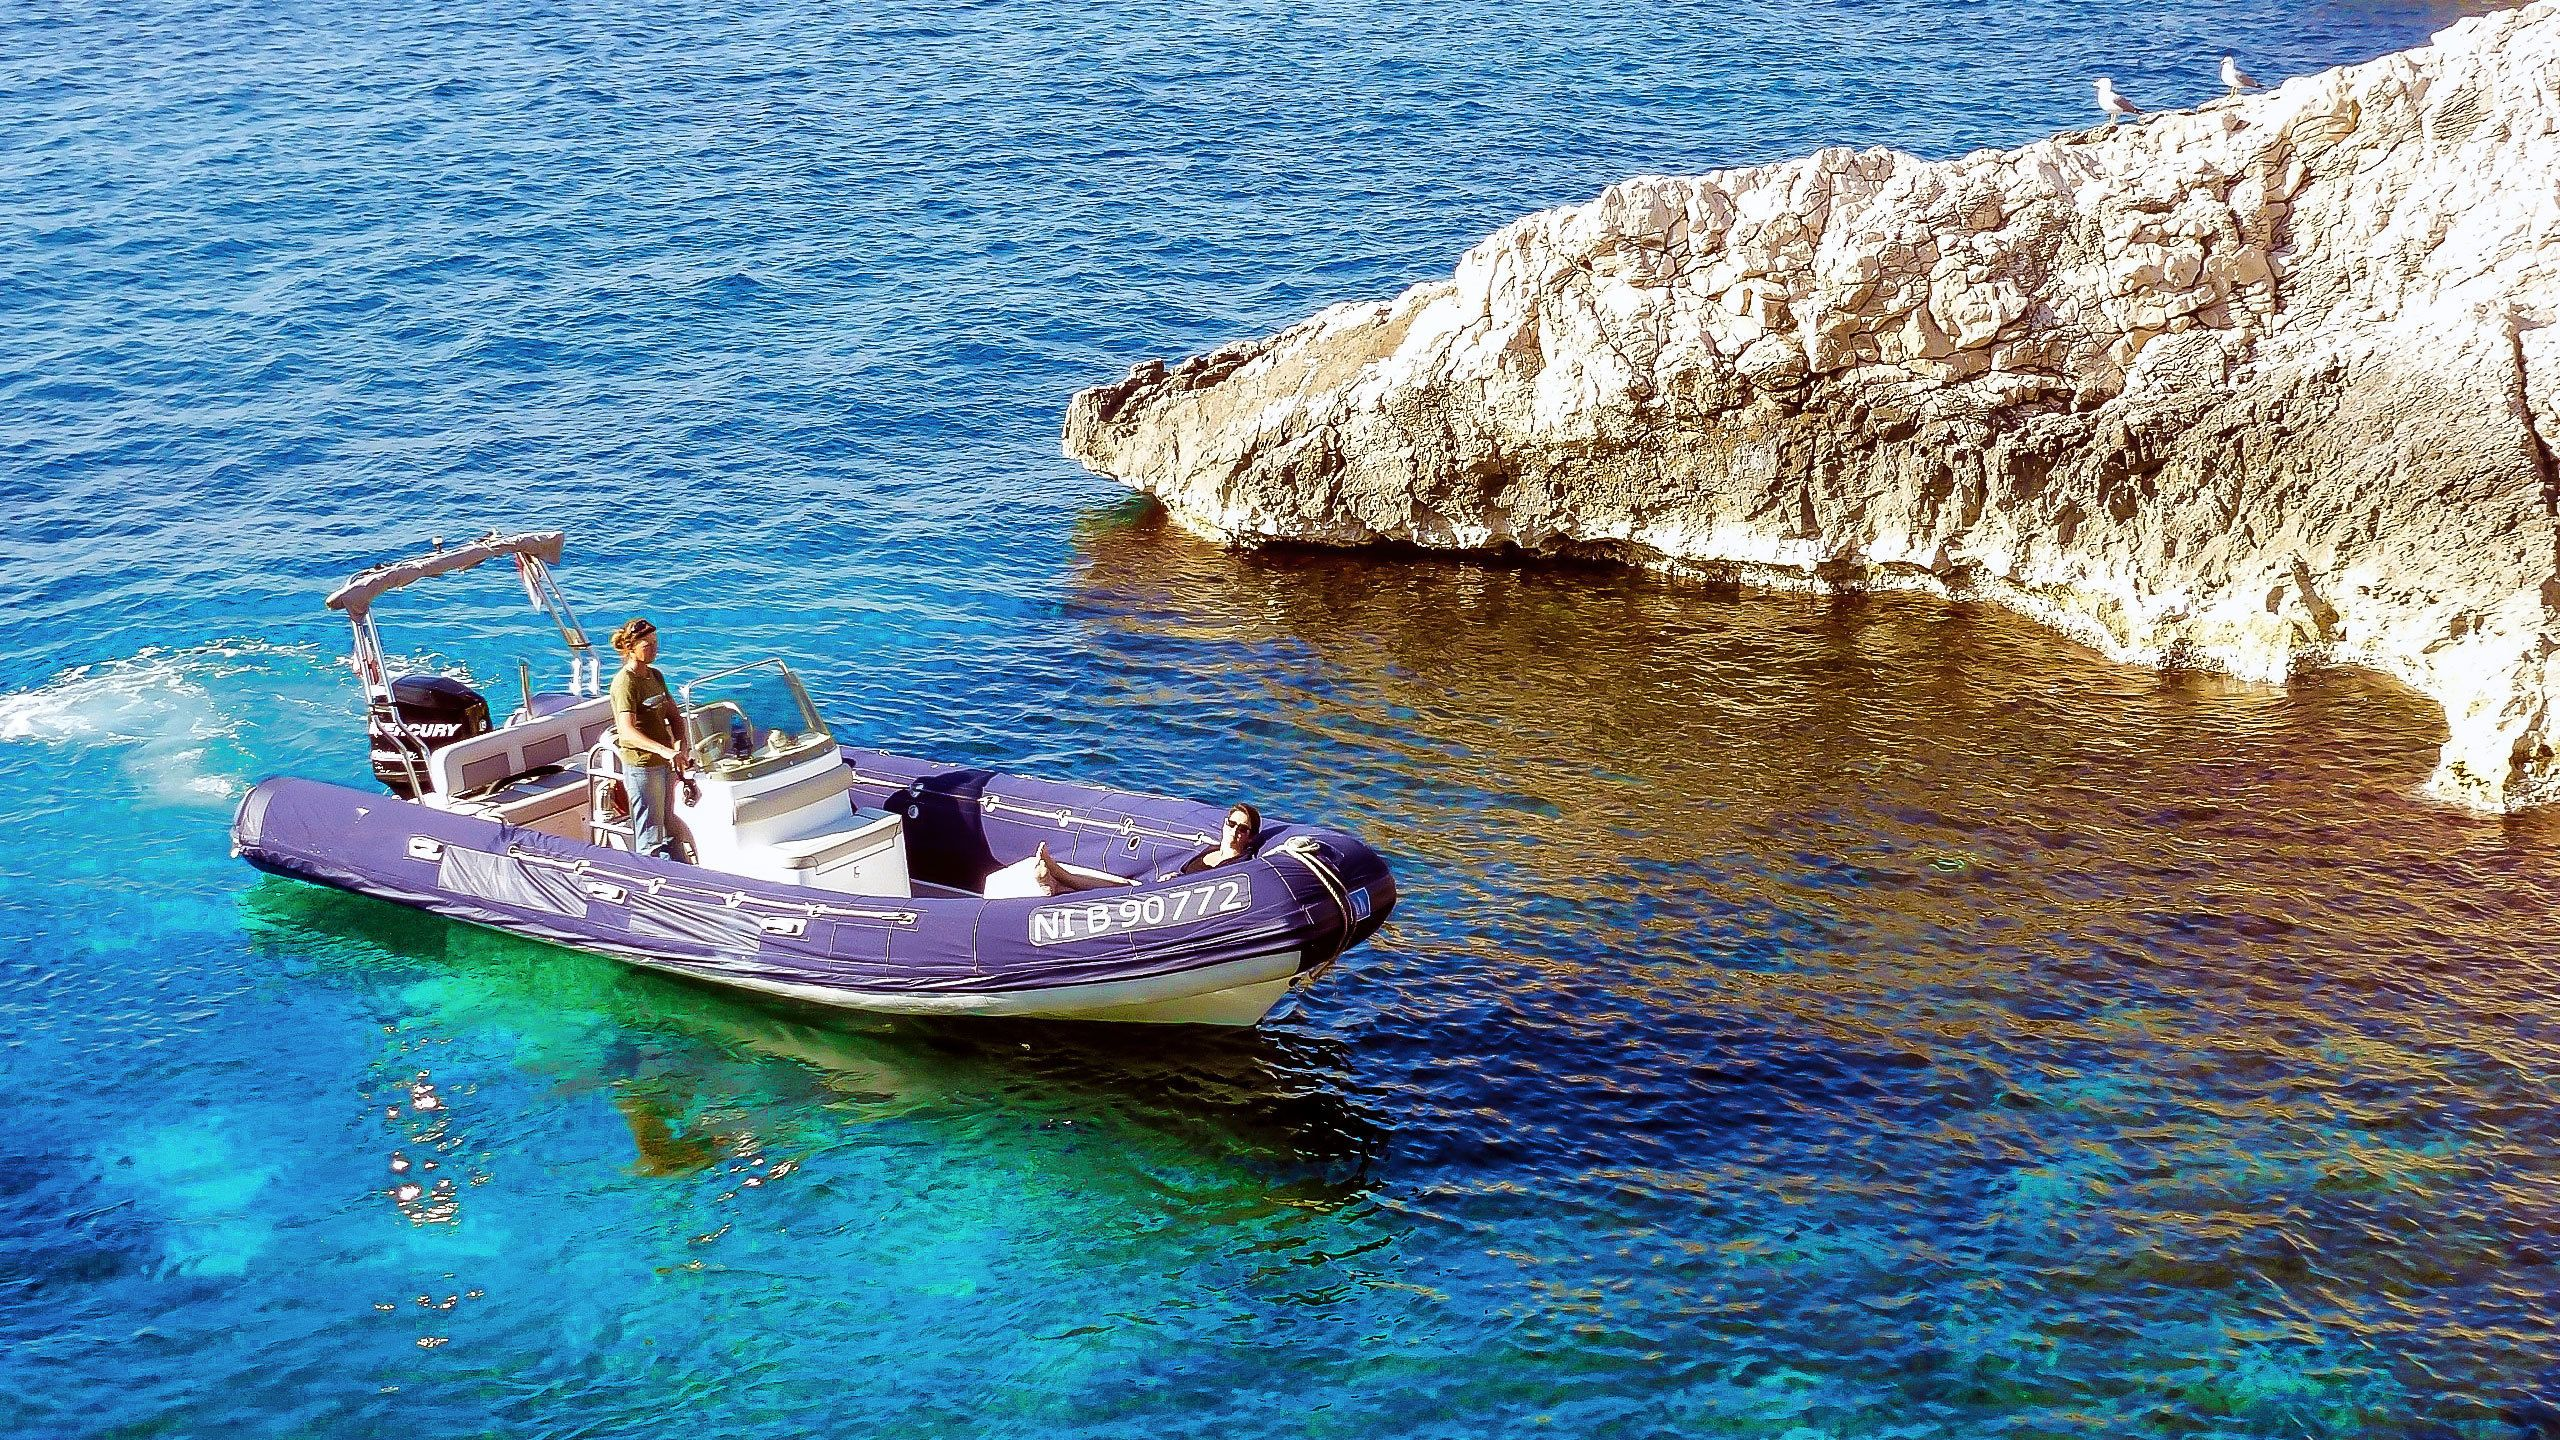 Boat in the clear blue water of the Marseille Calanques